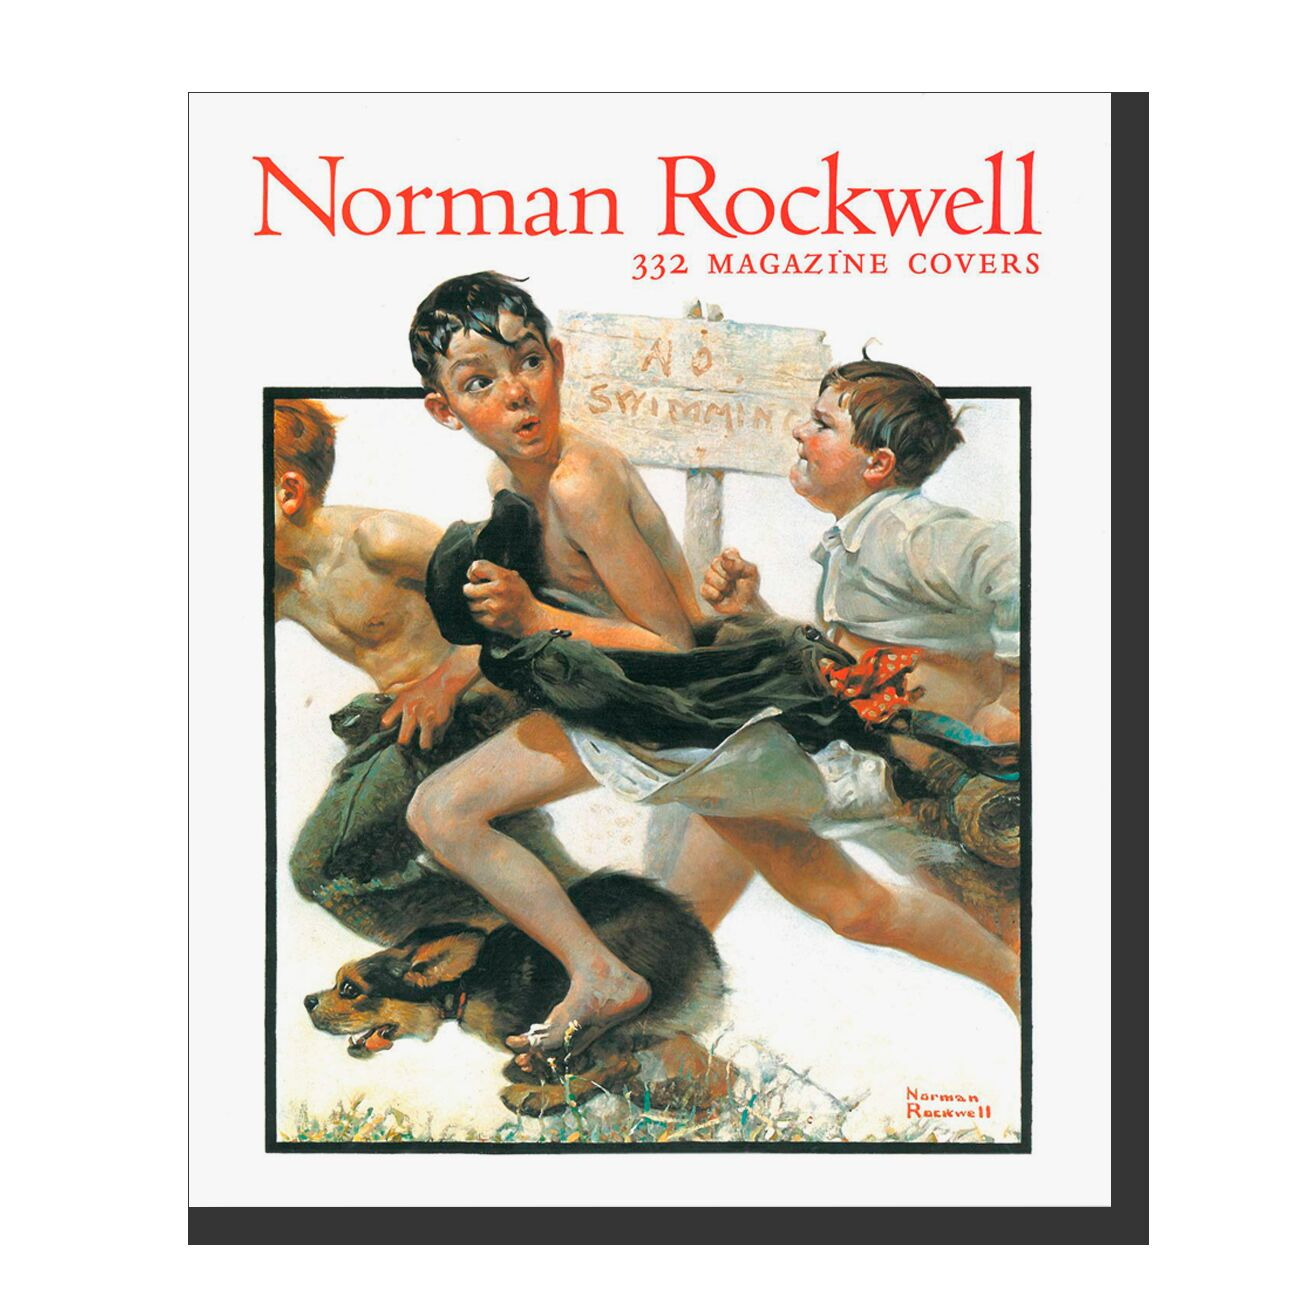 Norman Rockwell: 332 Magazine covers